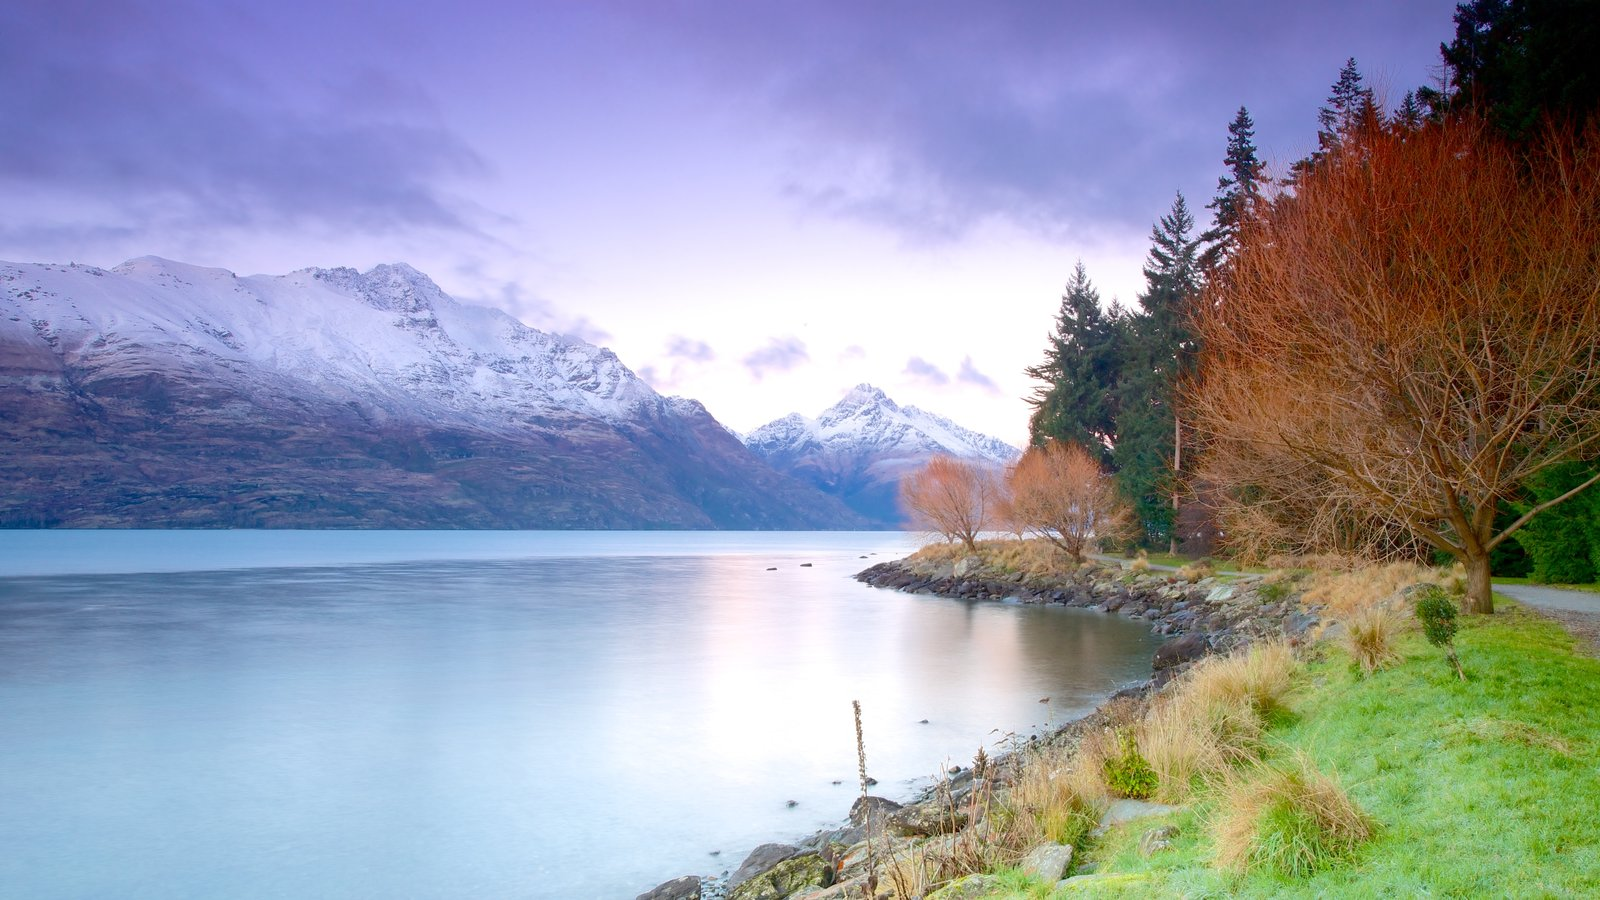 Queenstown featuring a lake or waterhole, autumn leaves and mountains